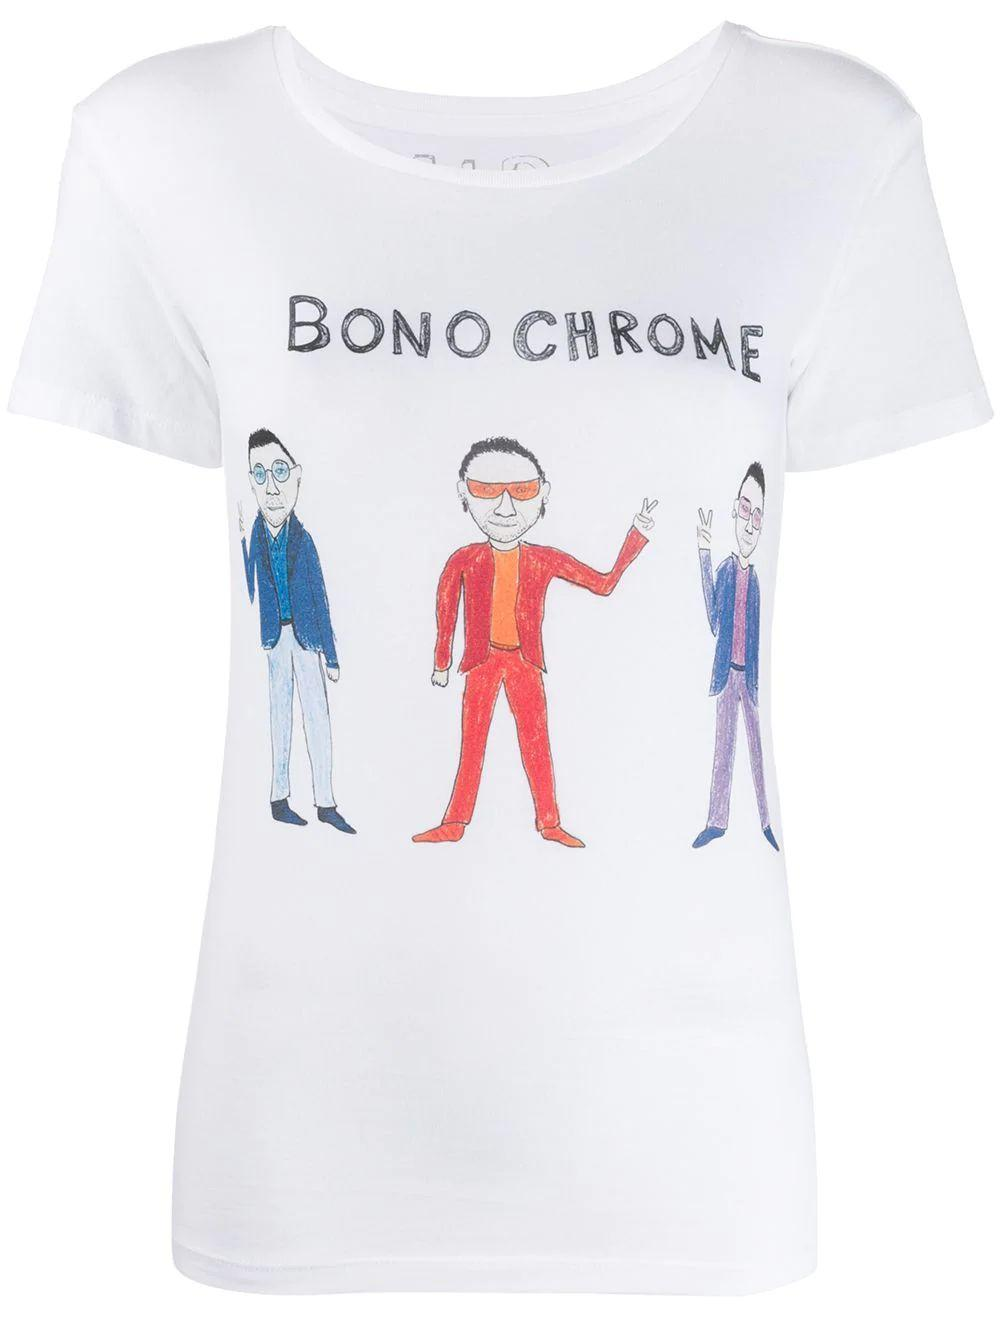 Bono Chrome Graphic Tee